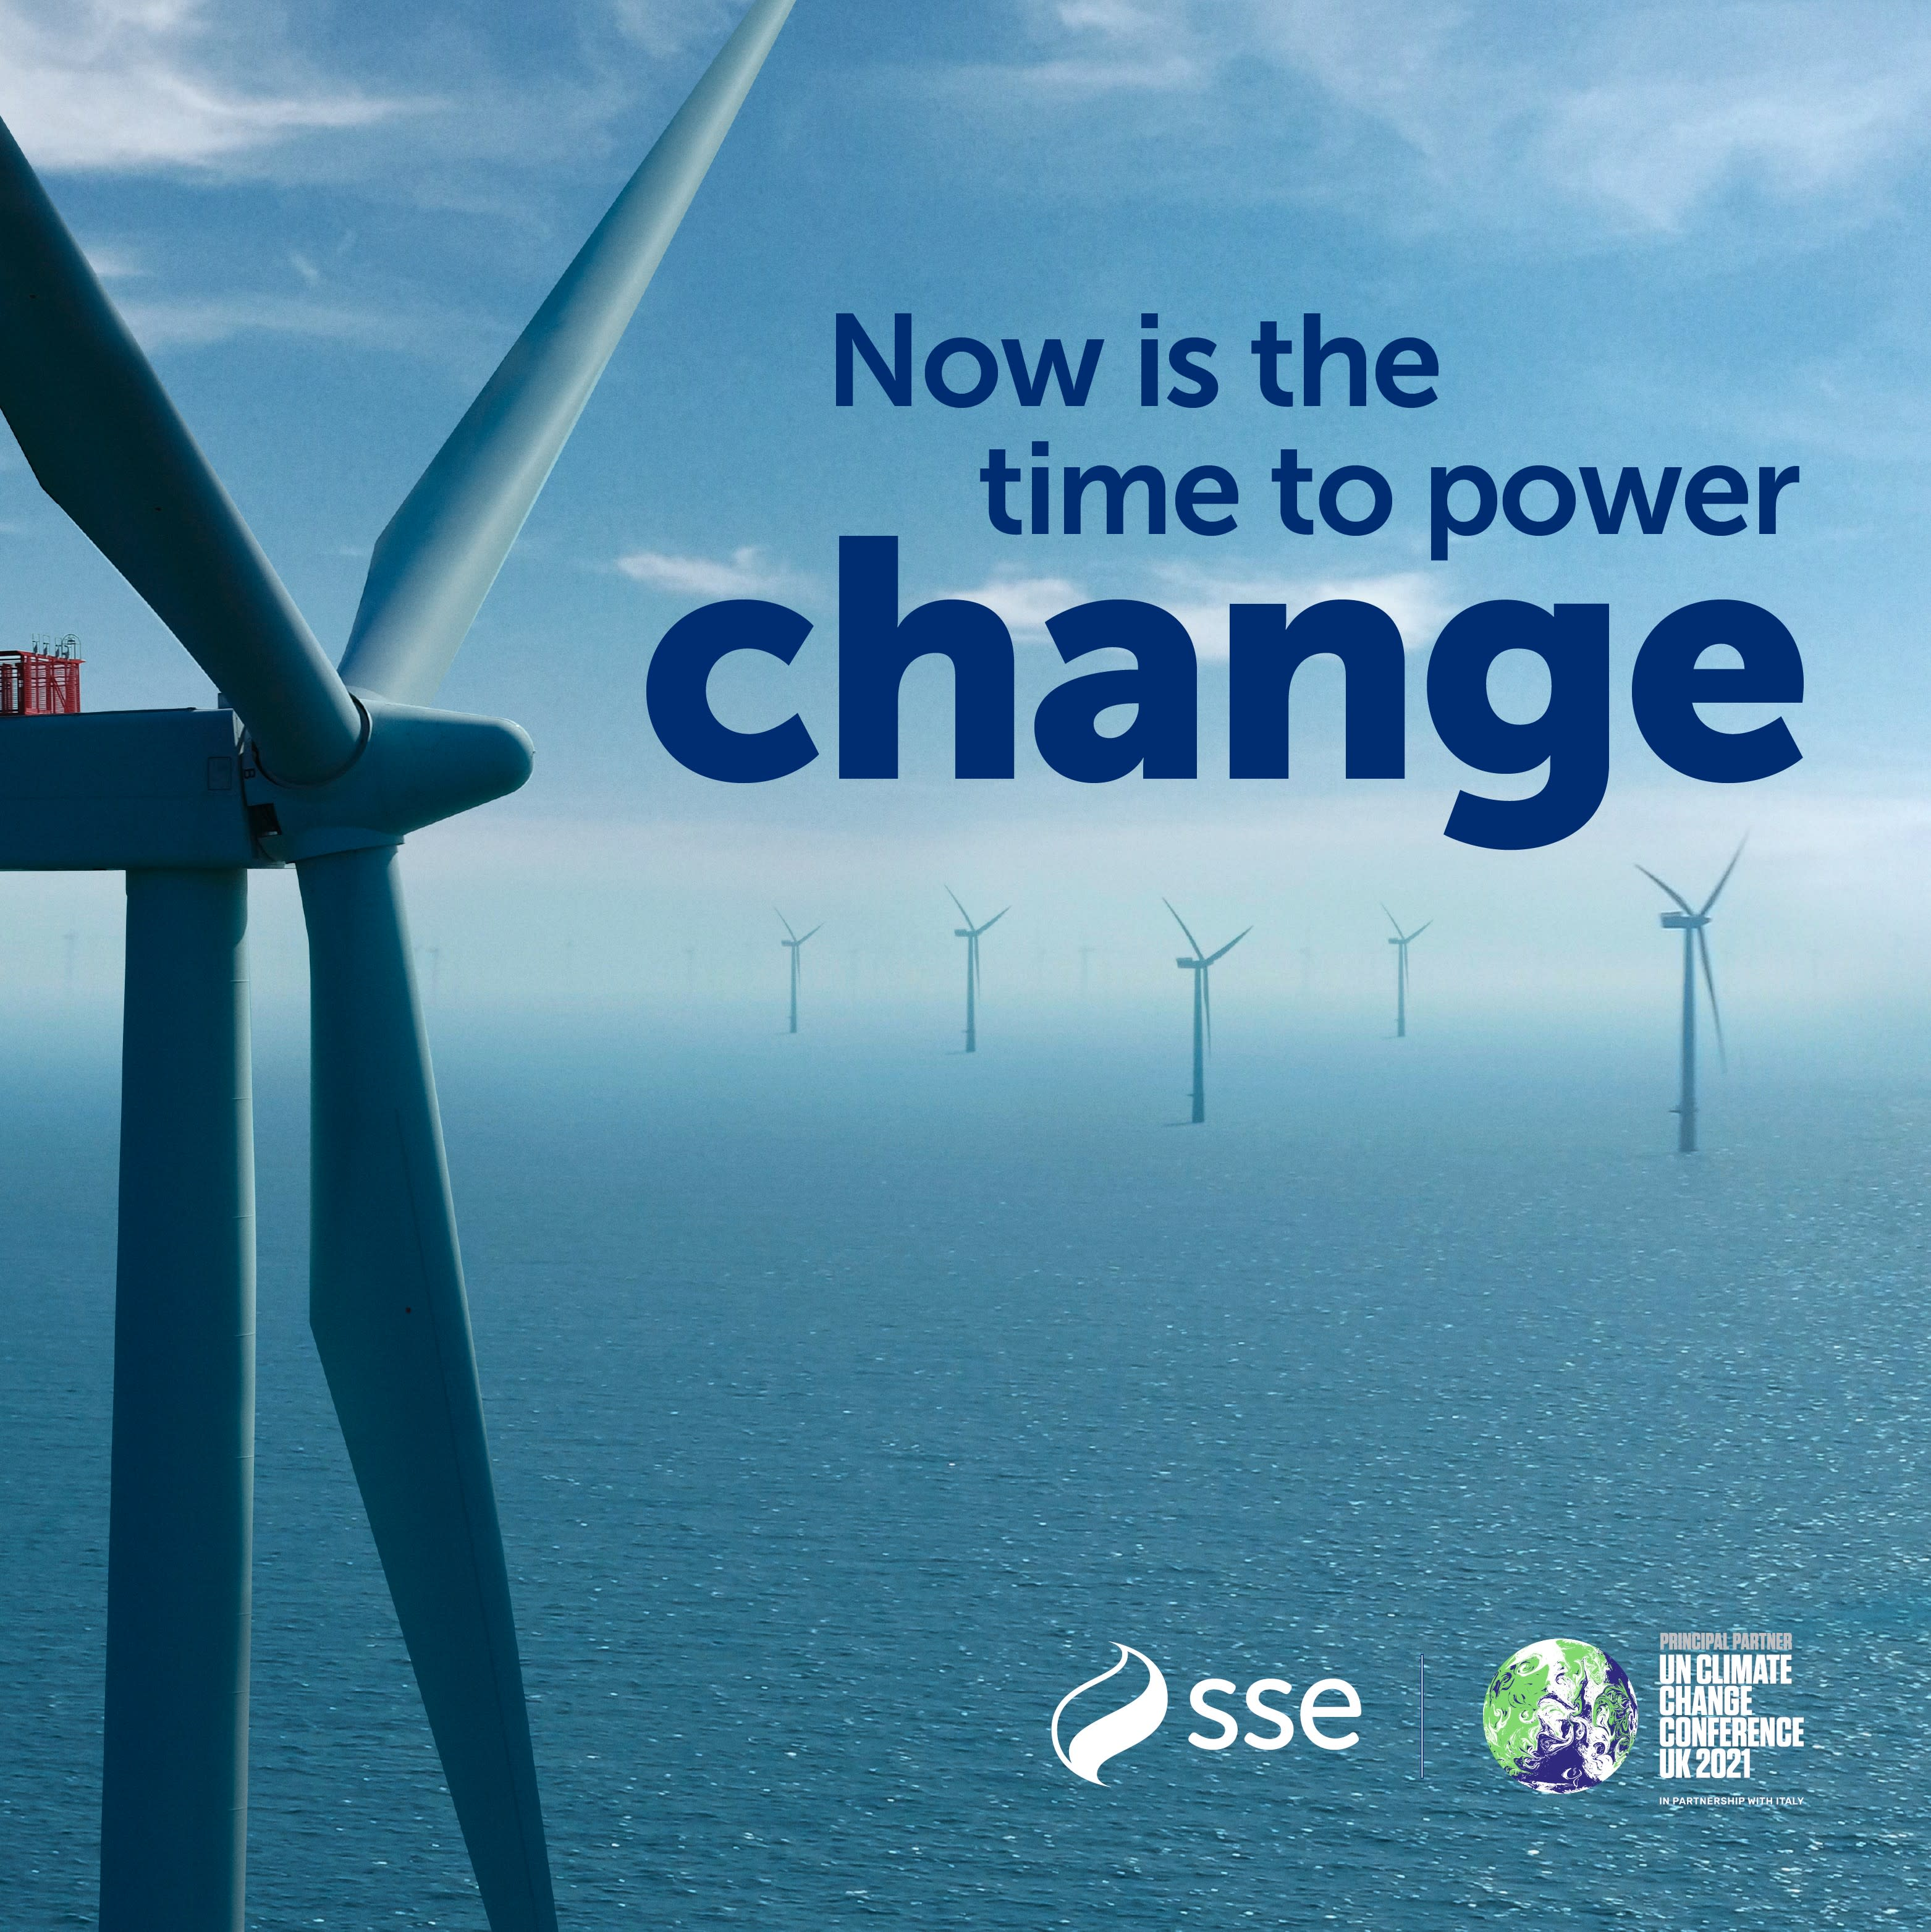 sse-now-is-the-time-to-power-change-social-square (1).jpg